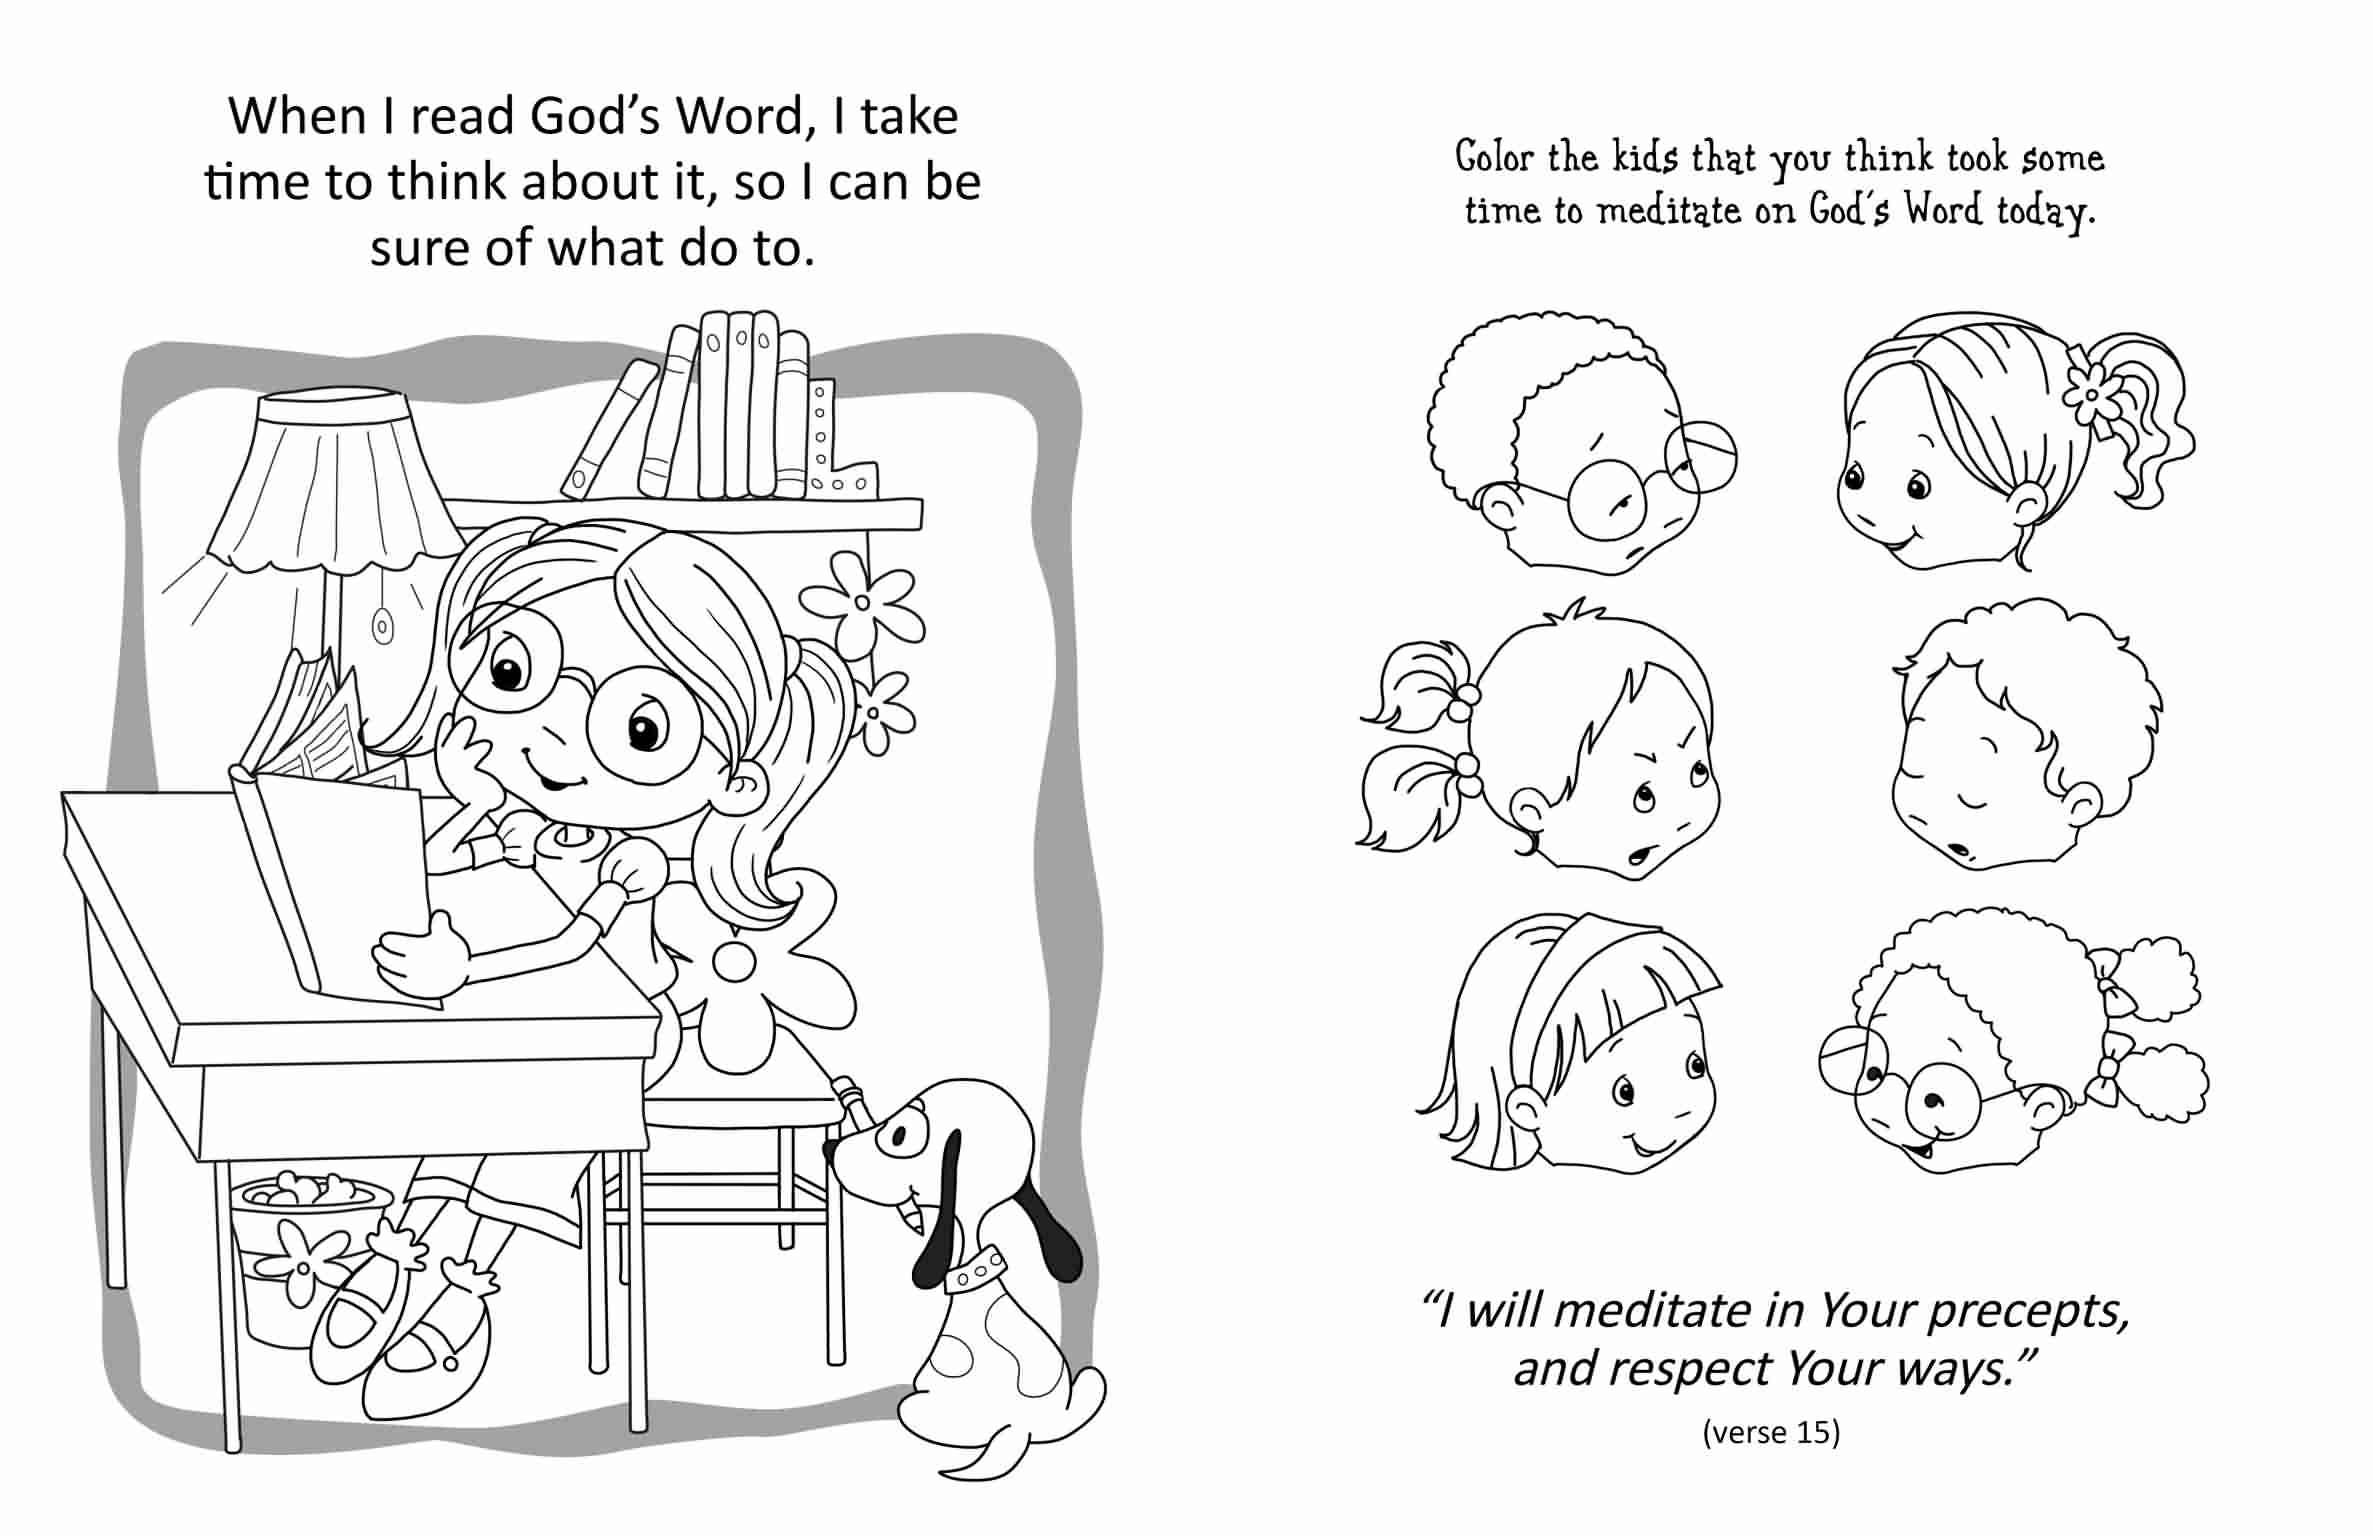 coloring pages for psalm 119 - photo#9